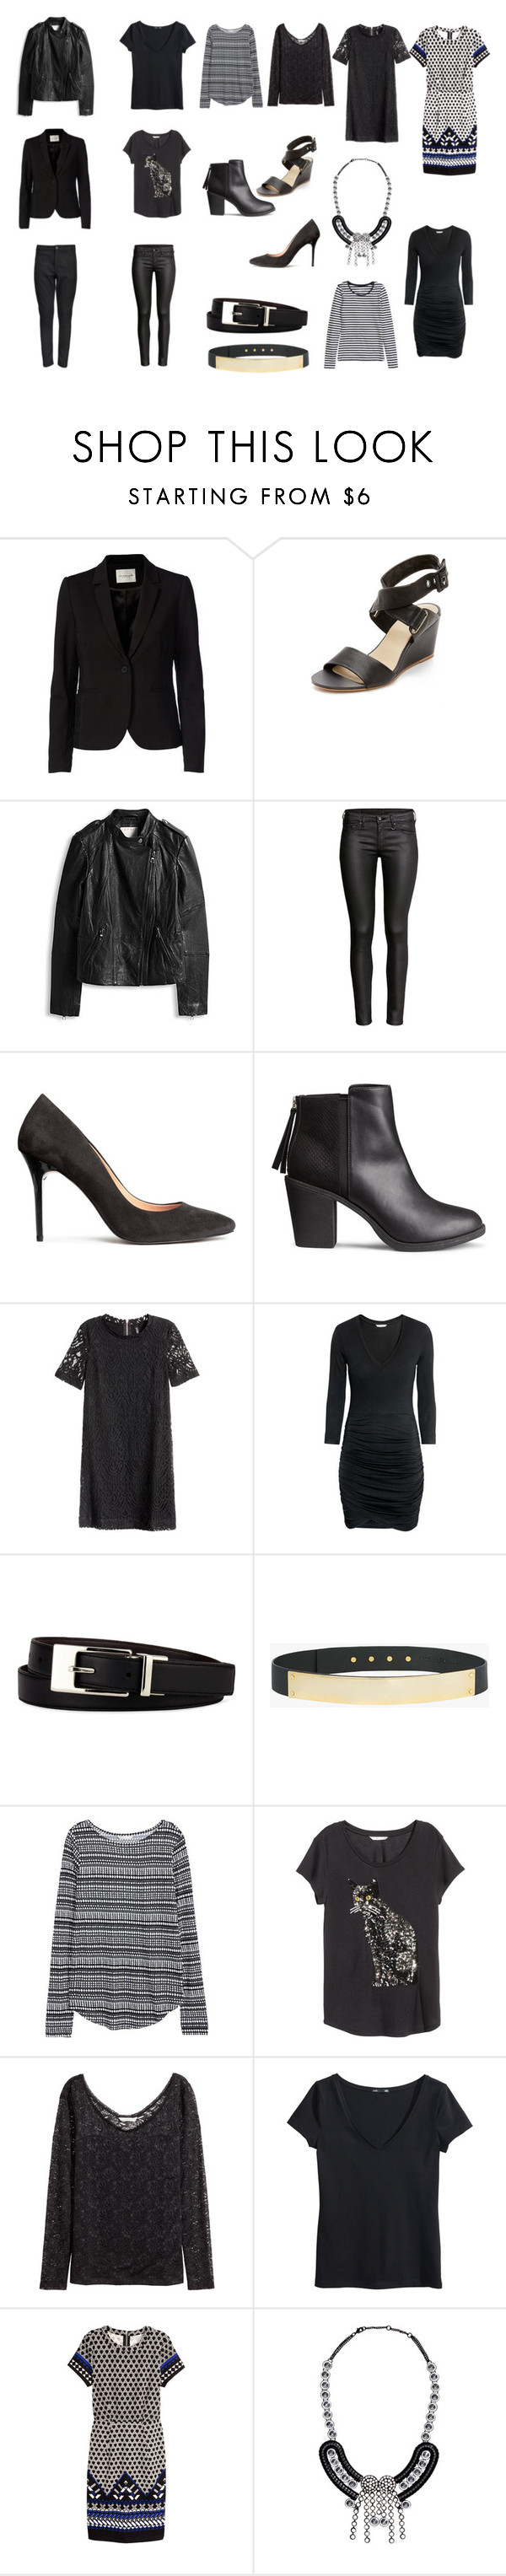 """Black"" by lone-haure-norrevang on Polyvore featuring FiveUnits, rag & bone, H&M, Liz Claiborne and Halston Heritage"